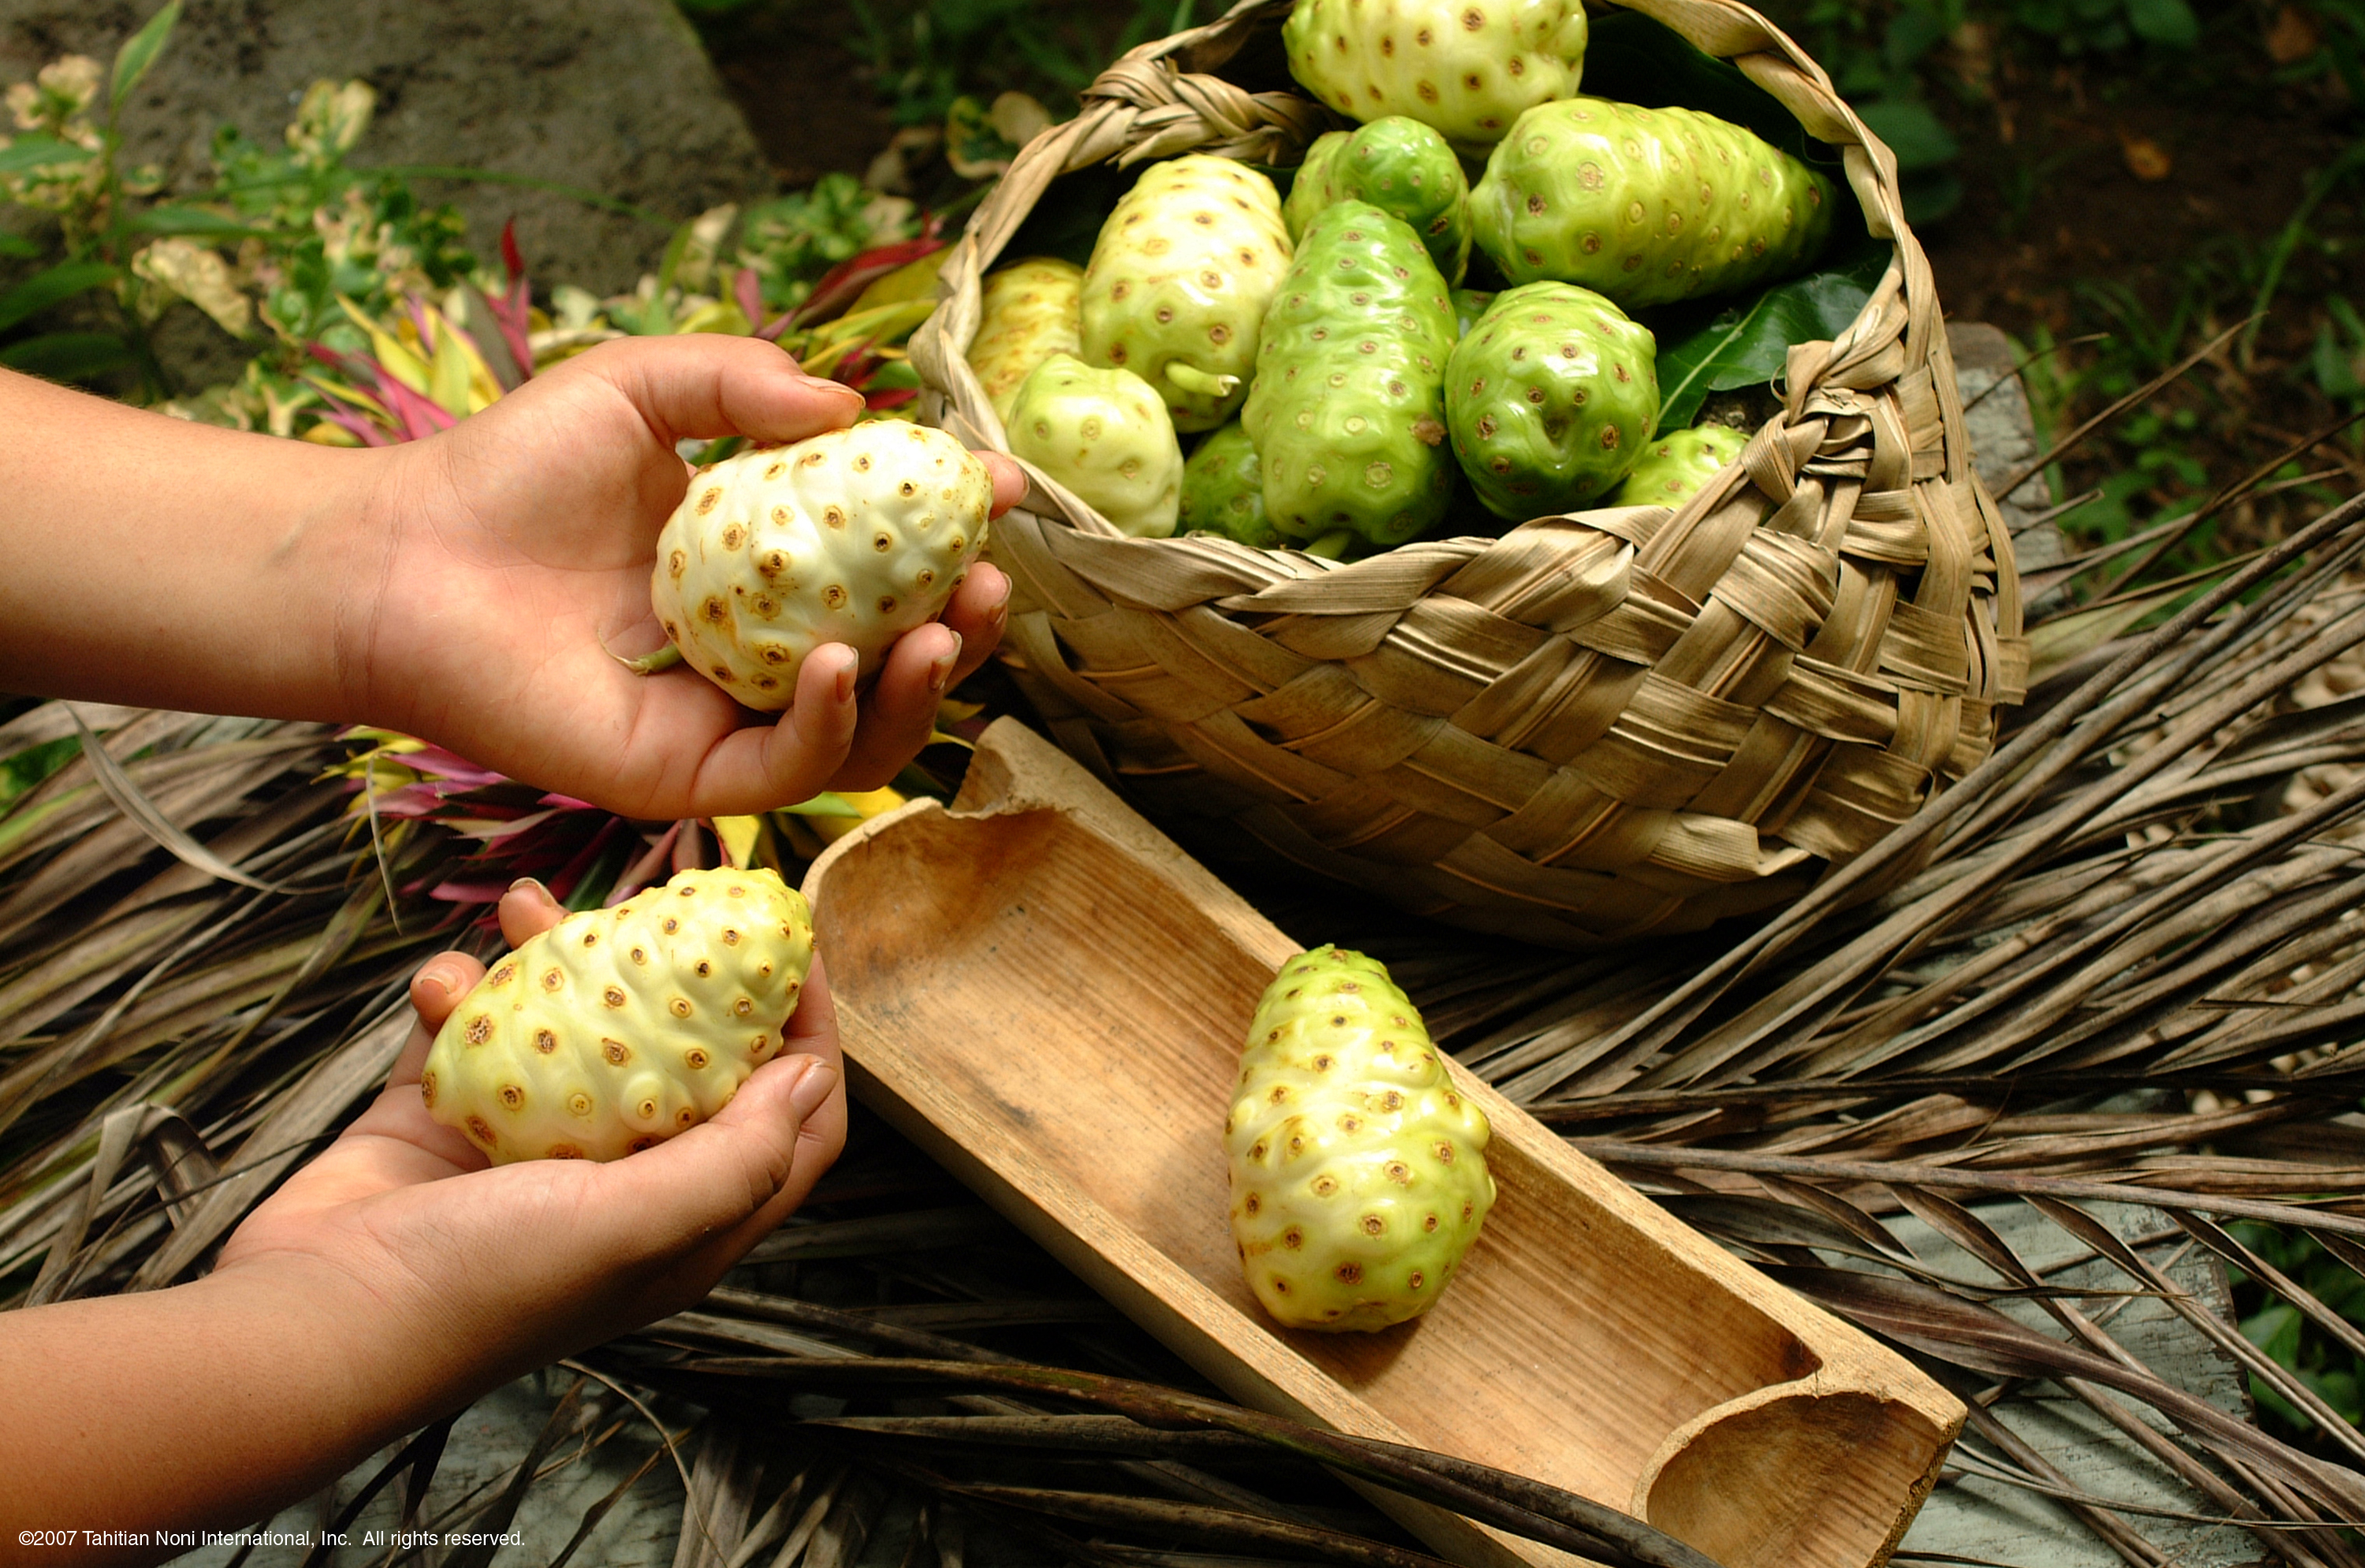 Noni-Fruit-Basket.jpg